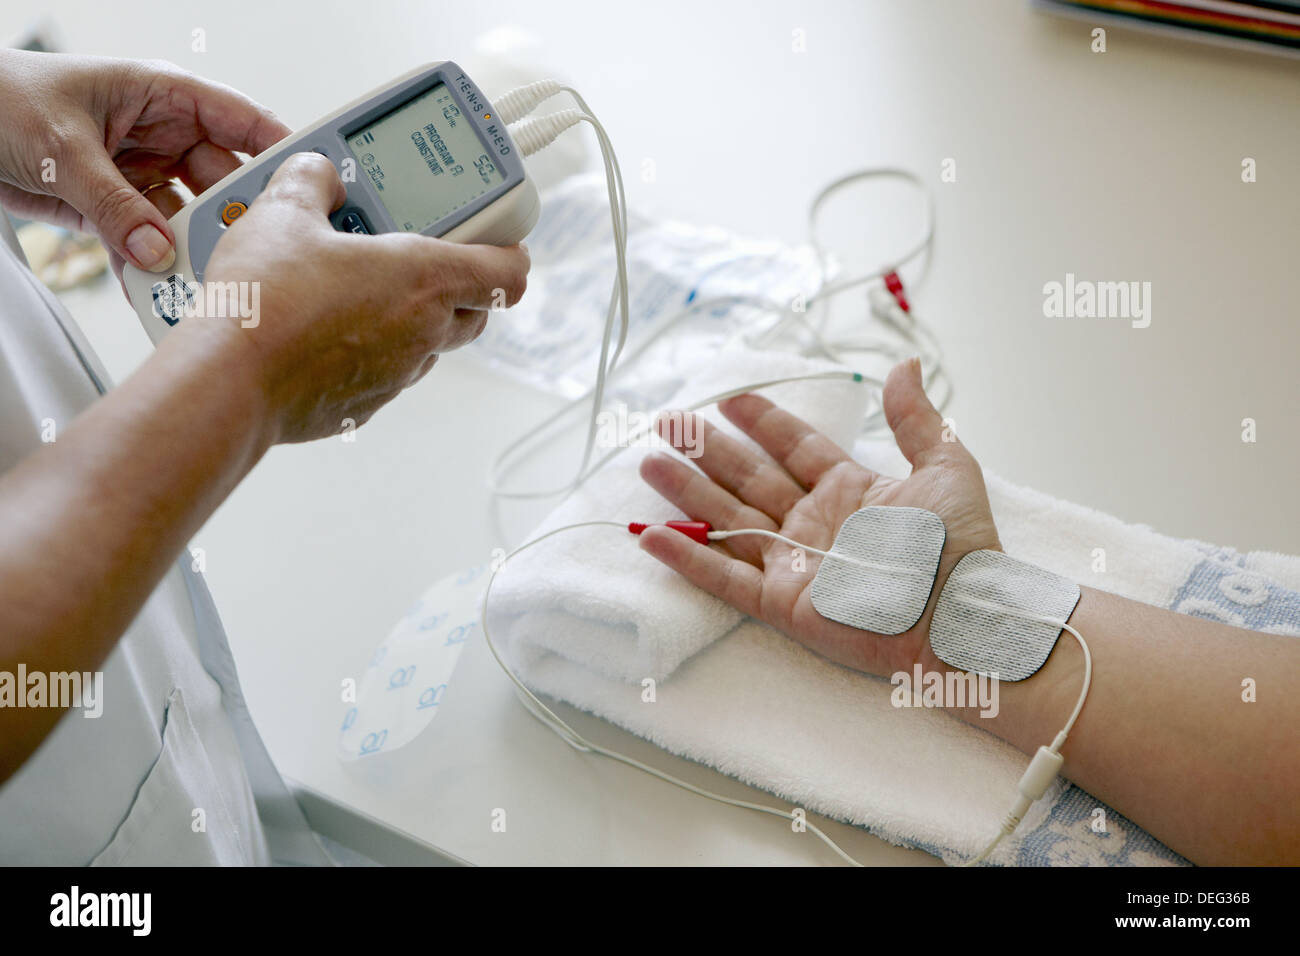 Rehabilitation, application of electrical current through the skin for pain control. Hospital Universitario de Gran Canaria - Stock Image